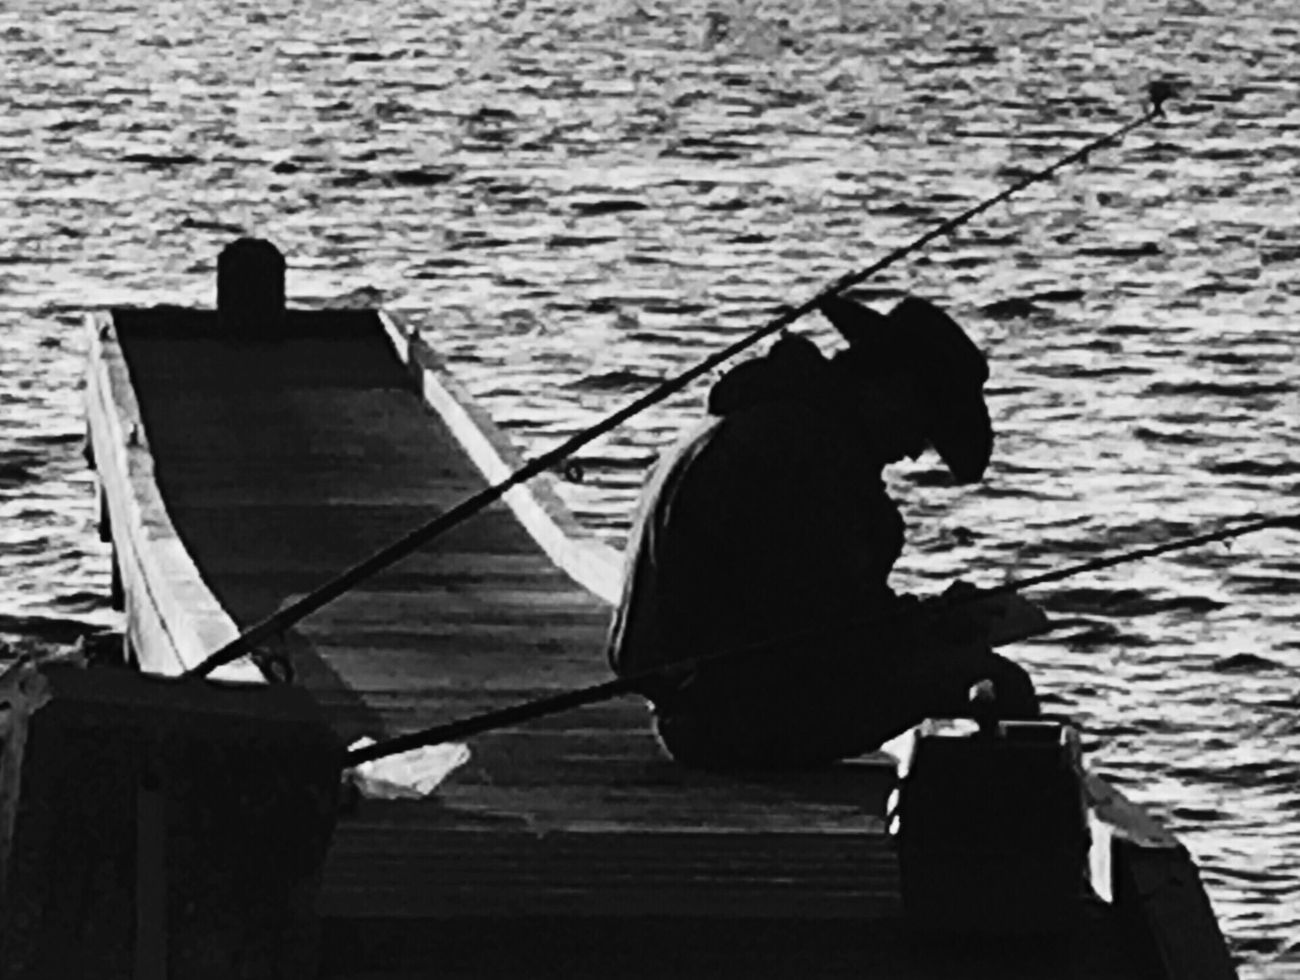 Darkness And Light Light And Shadow Blackandwhite Black & White Taking Photos Nature Silhouette EyeEm Best Shots Eye4photography  Waterfront People Black And White Fishing Man Seaside